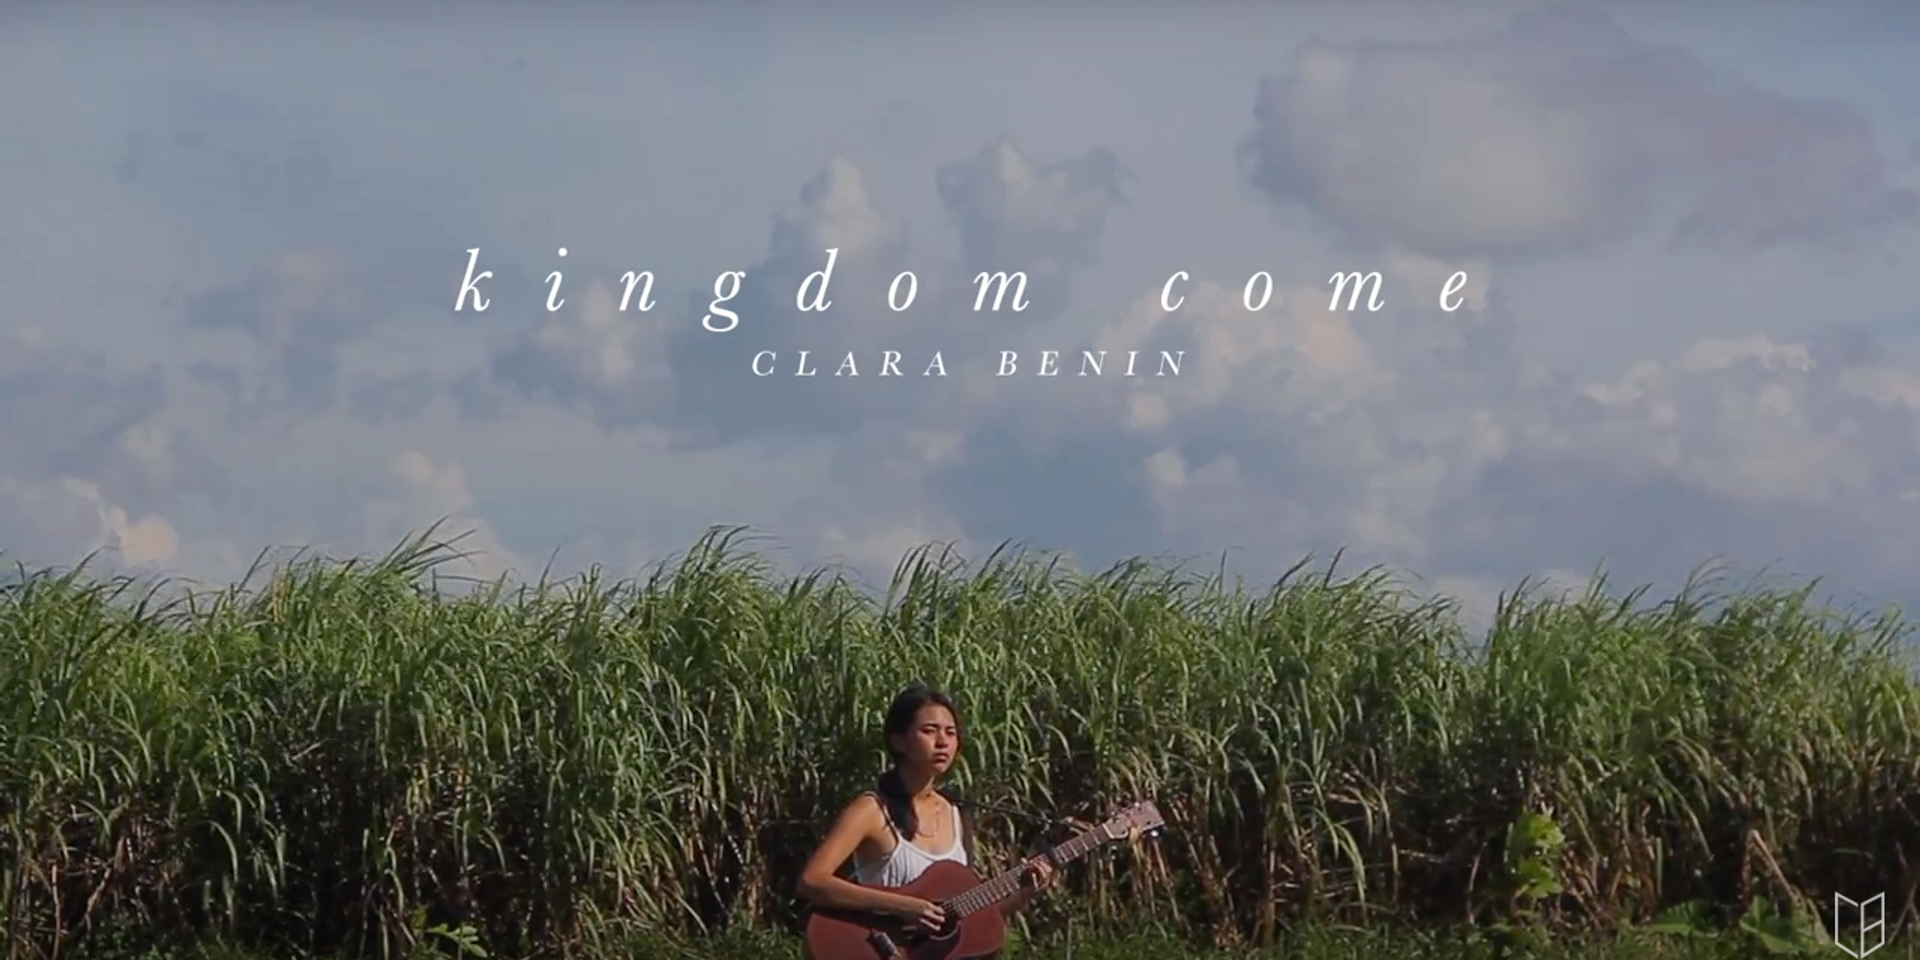 """WATCH: Clara Benin opens 2017 with new lyric video for """"Kingdom Come"""""""